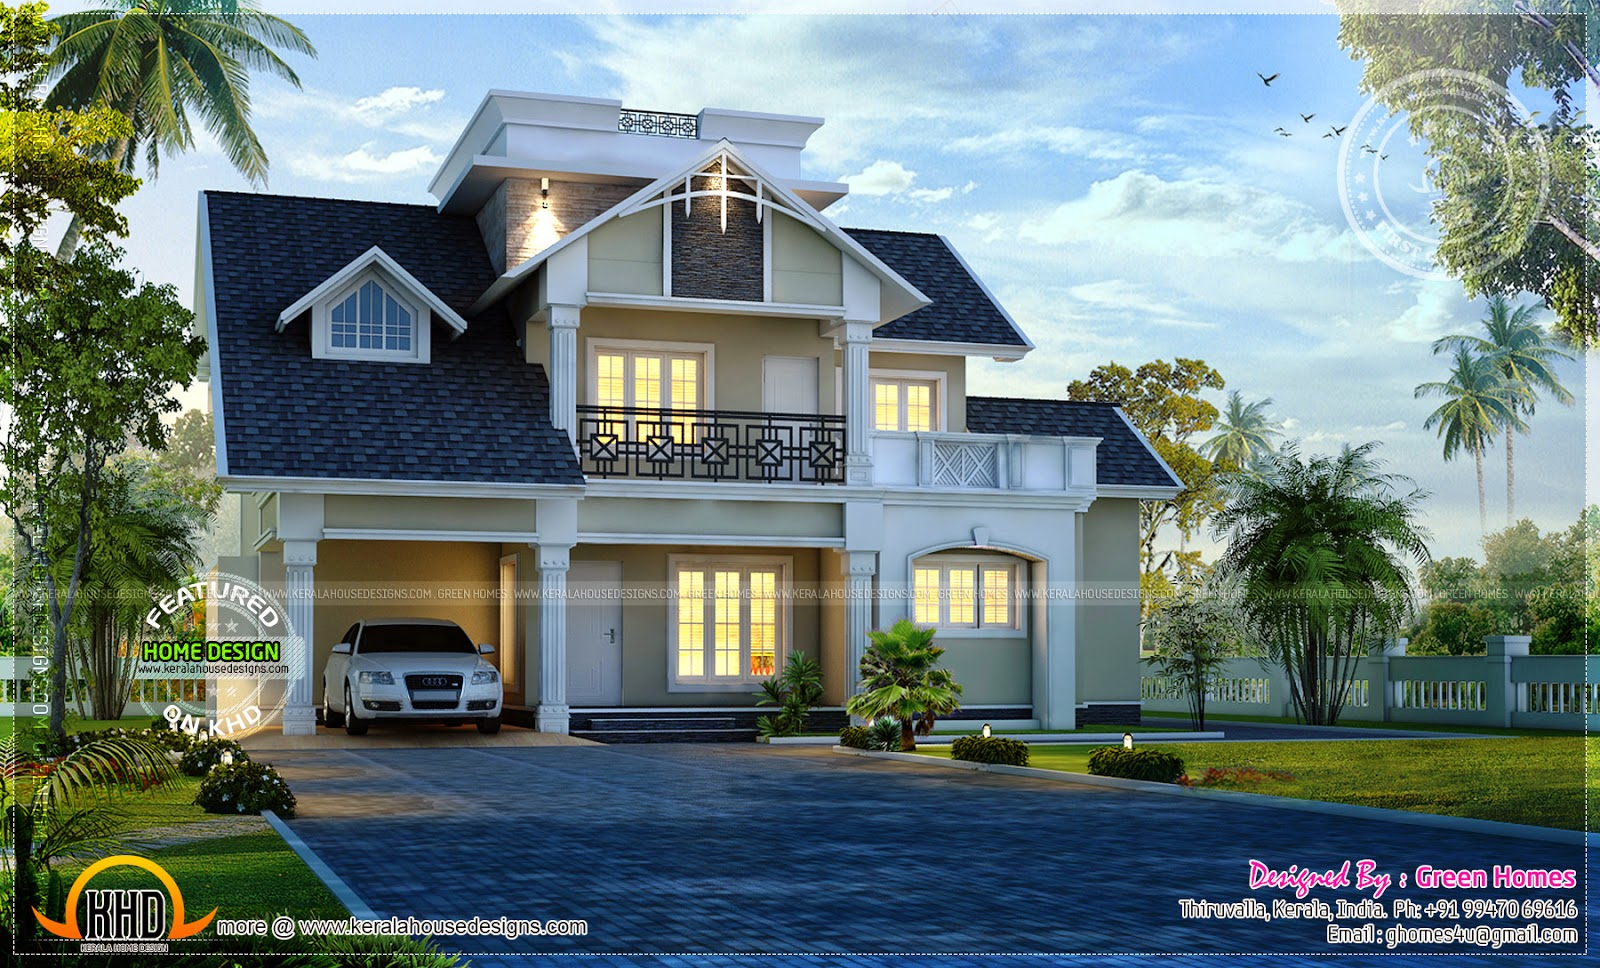 Awesome modern house exterior kerala home design and for Awesome modern houses